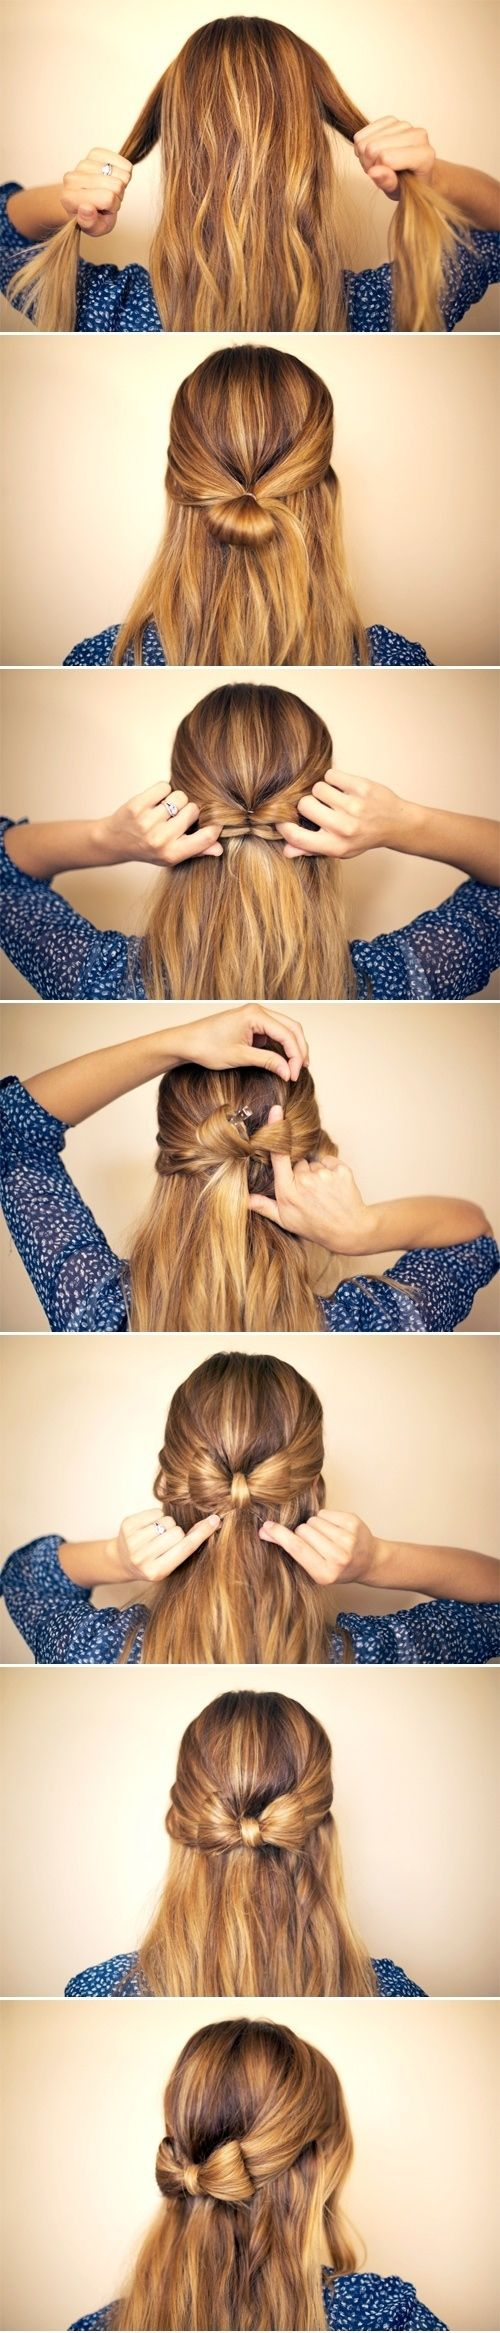 24 Statement Hairstyles For The Holiday Party Season - BuzzFeed Mobile